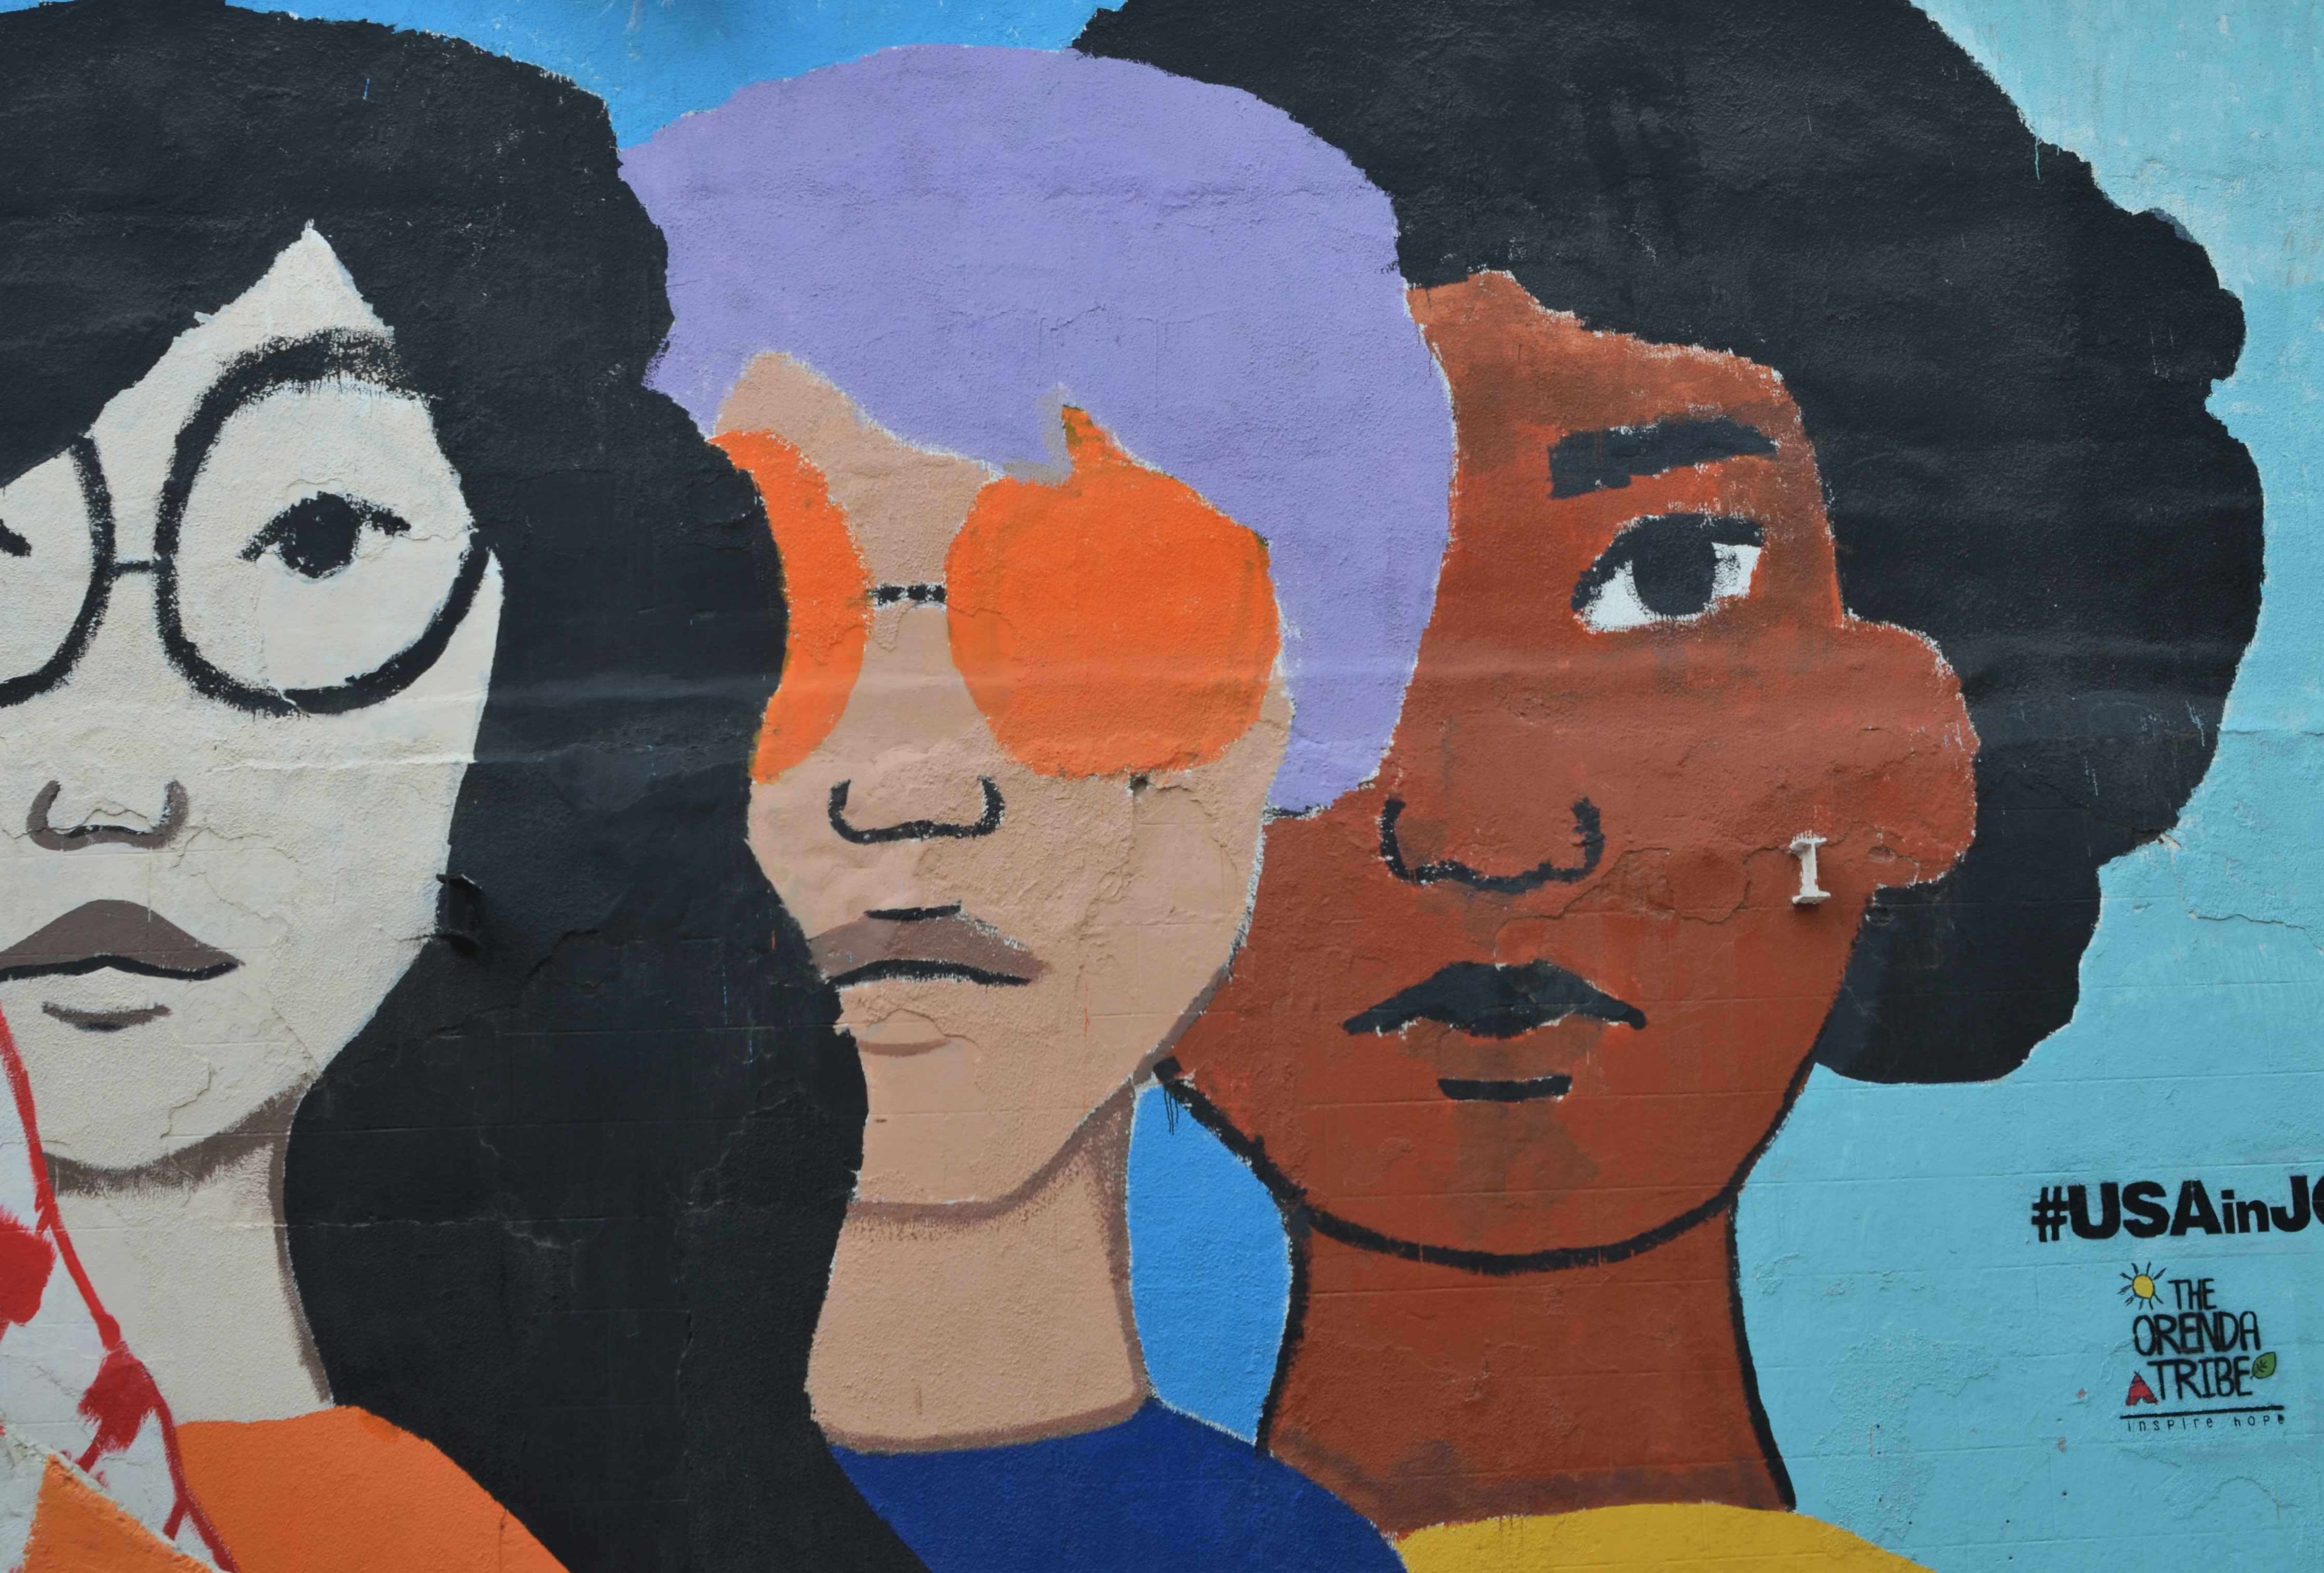 three large facecs in a mural, one with orange sunglasses and purple hair, one Asian looking with large black glasses